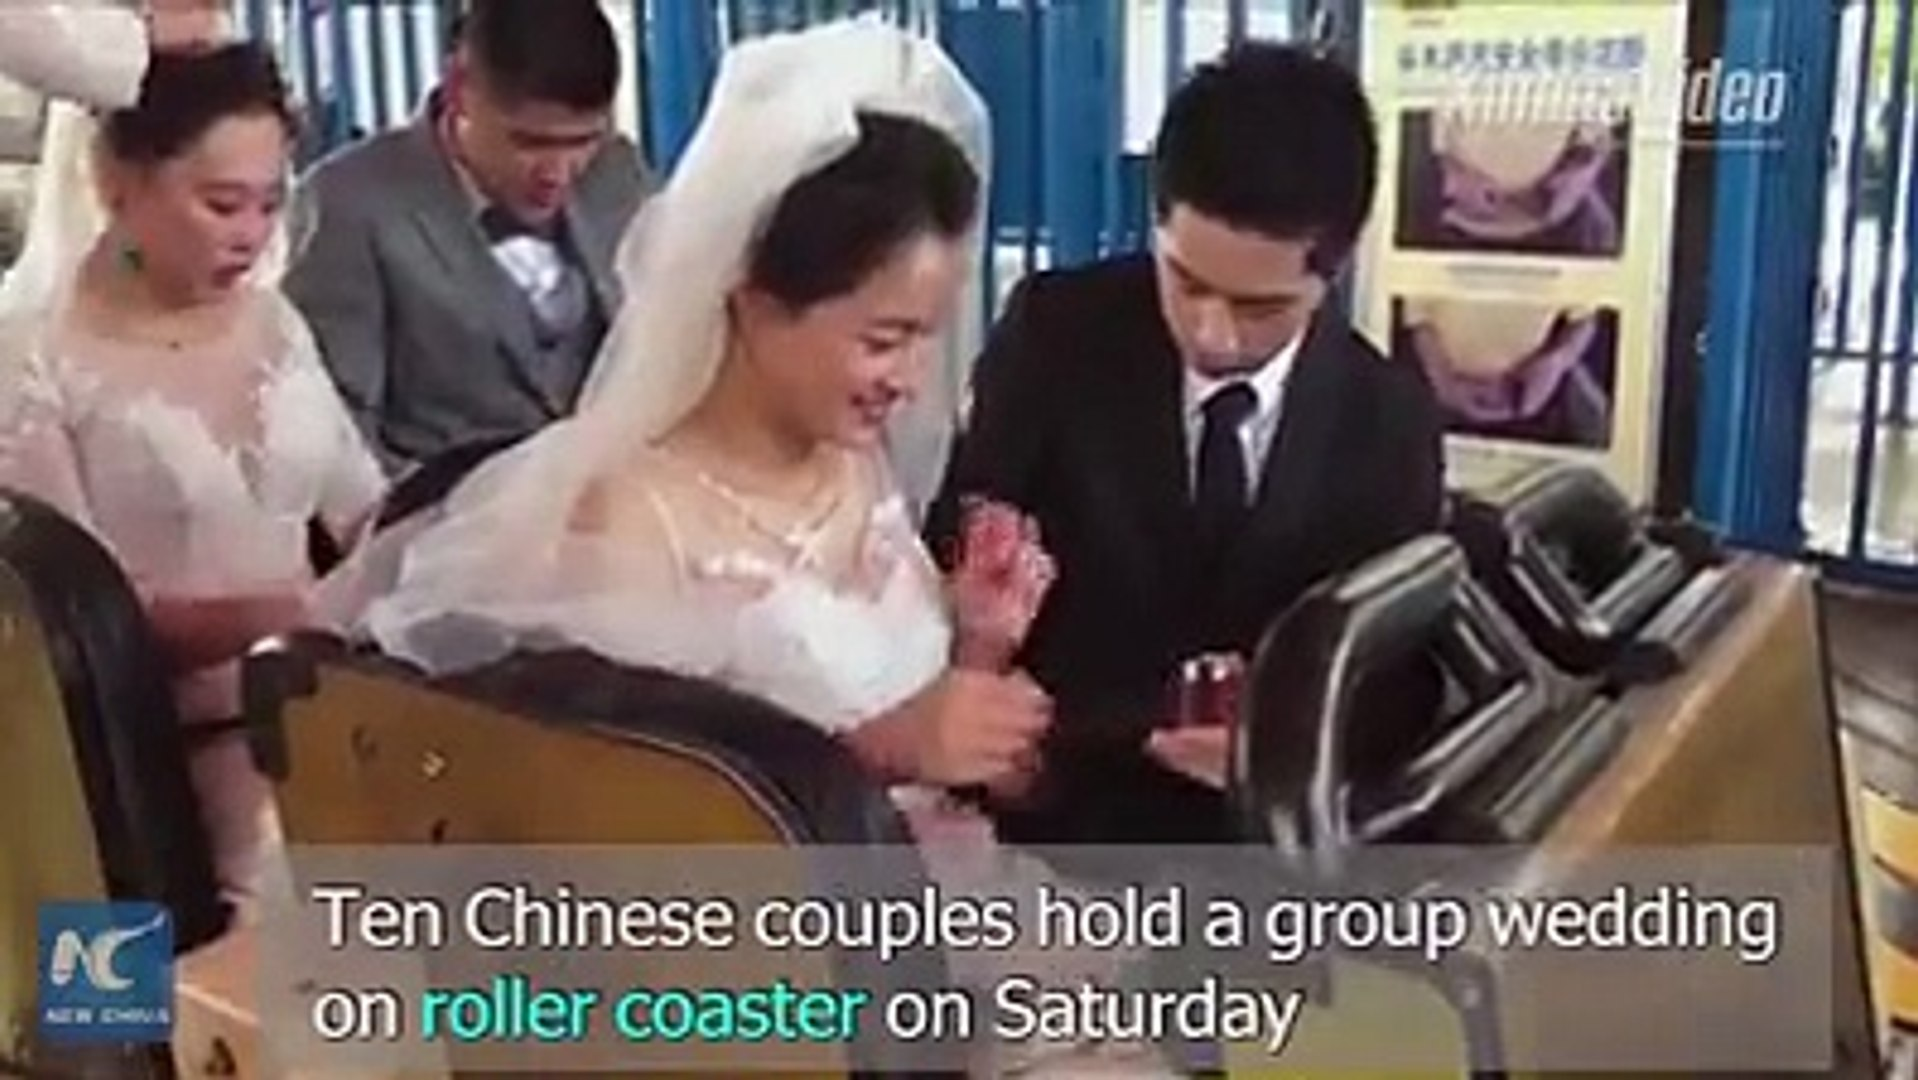 A unique group wedding ceremony was held on a wooden roller coaster at a Shanghai's amusement p